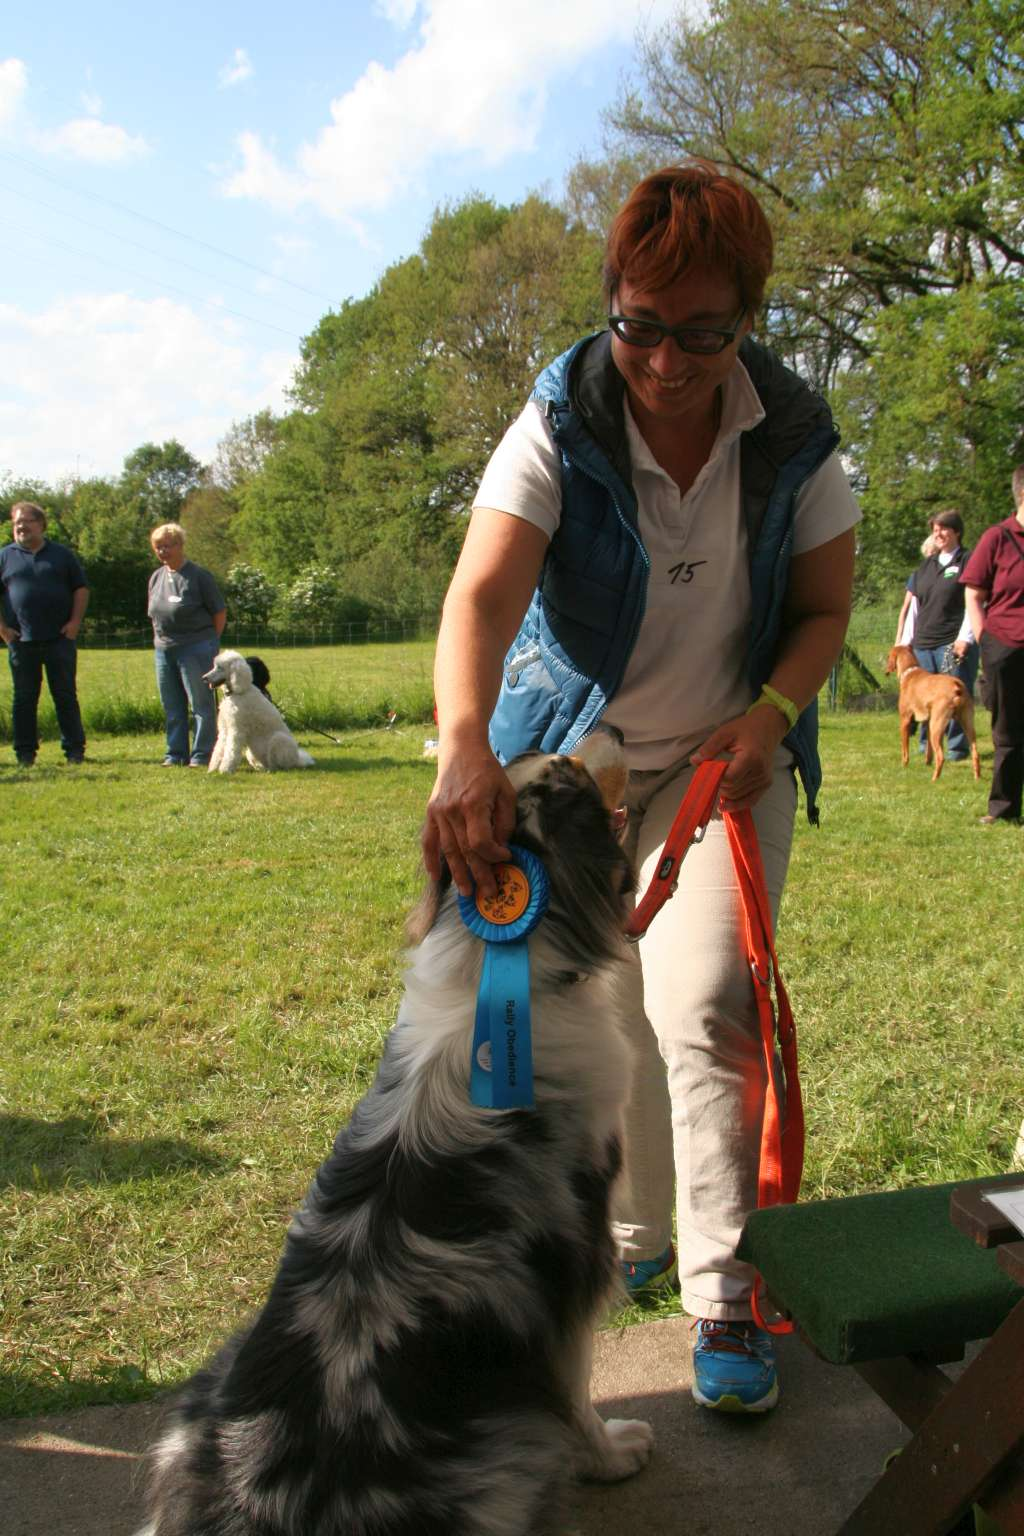 Rally_Obedience_Yvonne_2015_05_17_34